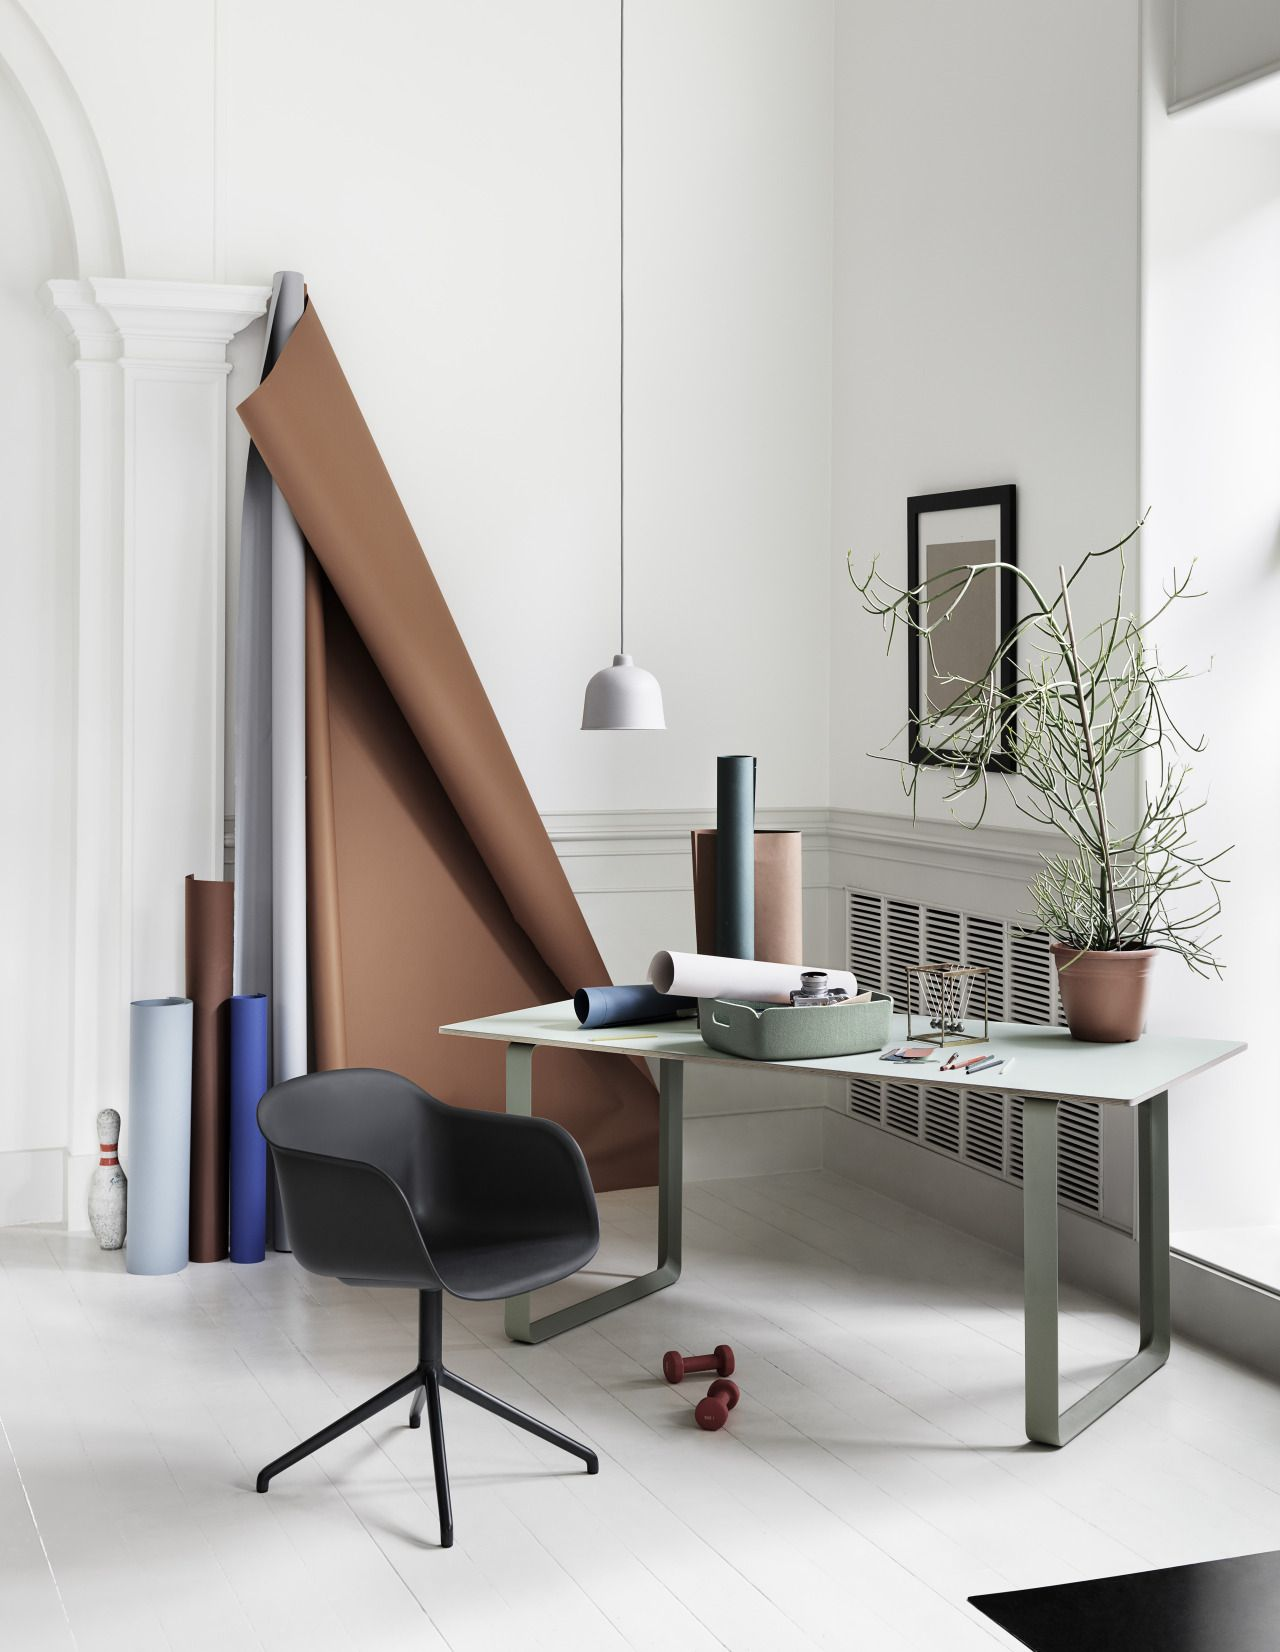 muuto #scandinavian #design #home #inspiration #nordic #danish #furniture #